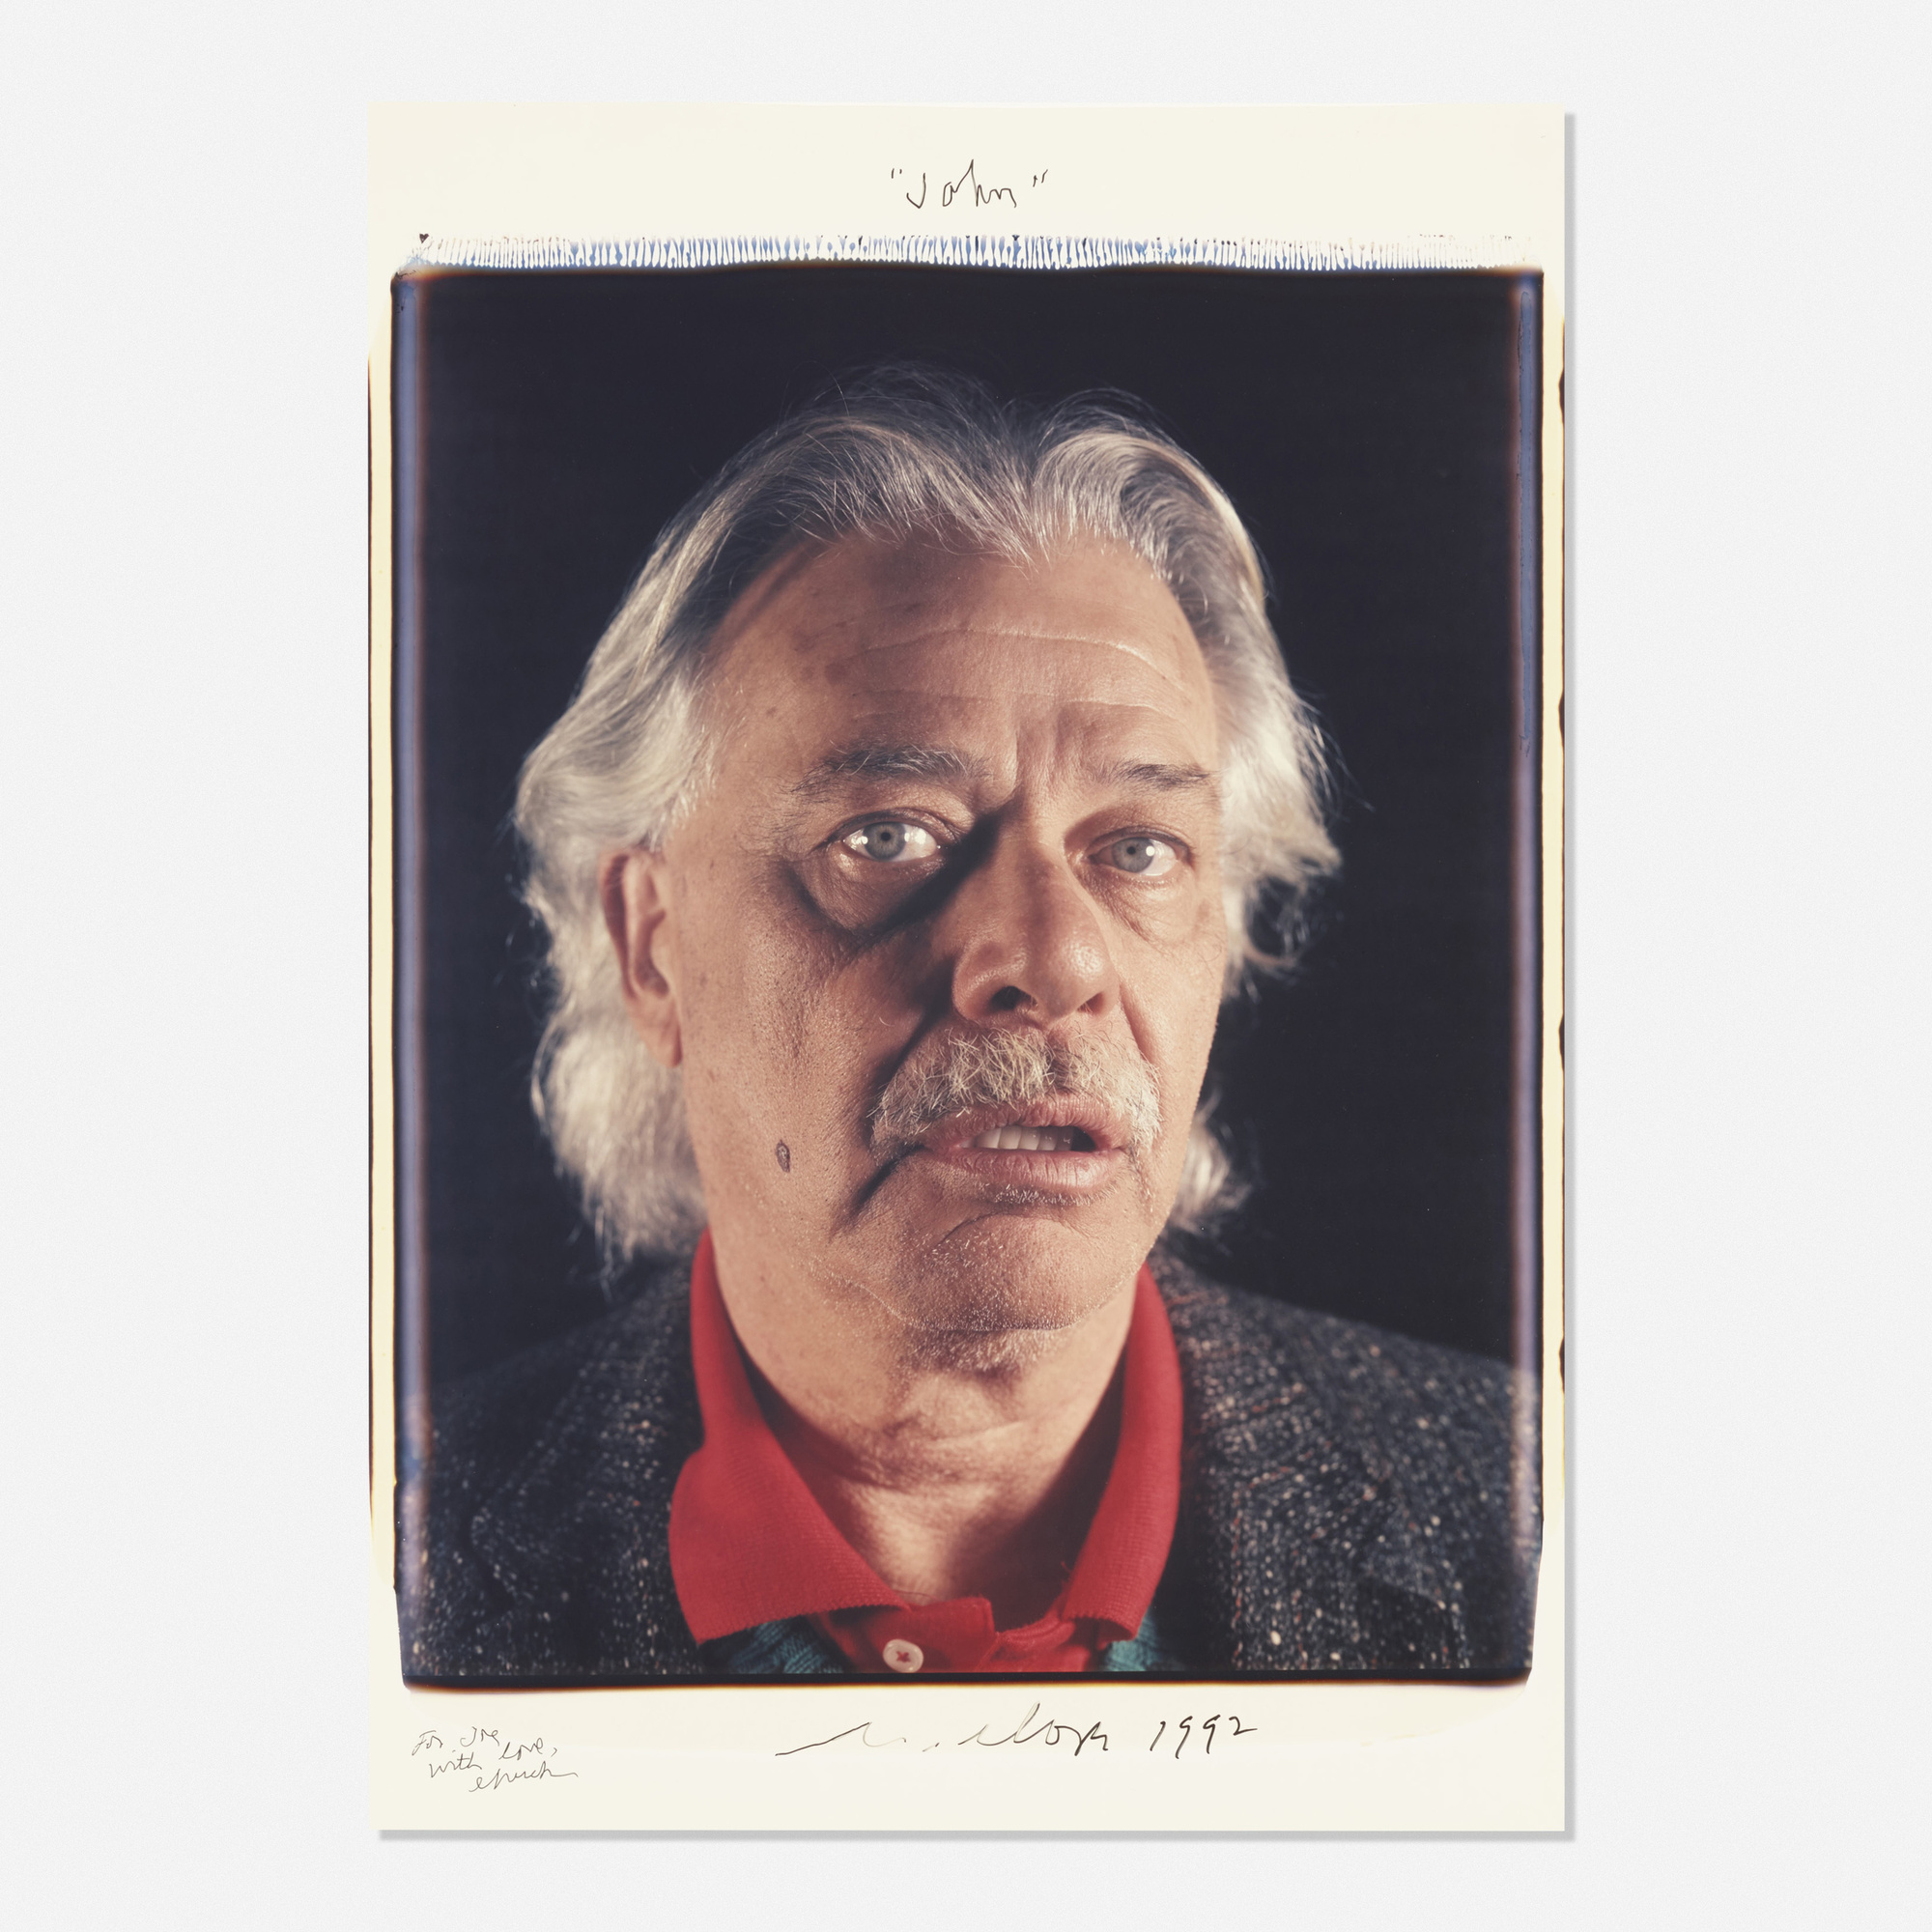 220: Chuck Close / John (John Chamberlain) (1 of 1)